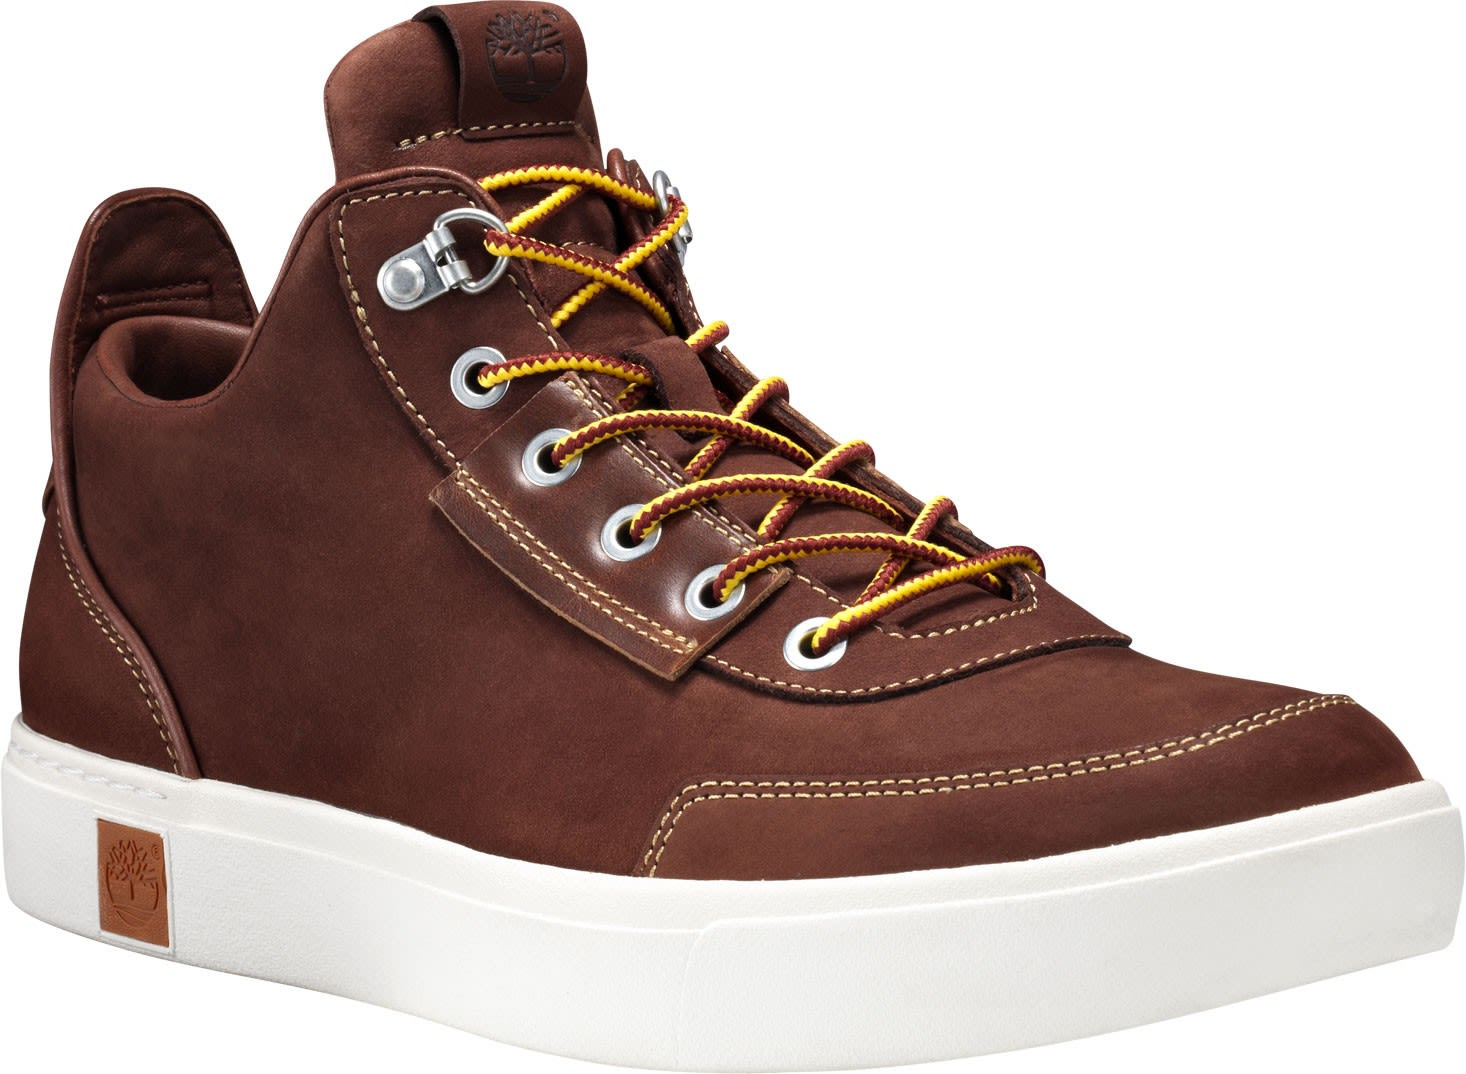 Timberland M Amherst High Top Chukka | Größe US 11 / EU 45 / UK 10.5,US 9.5 /